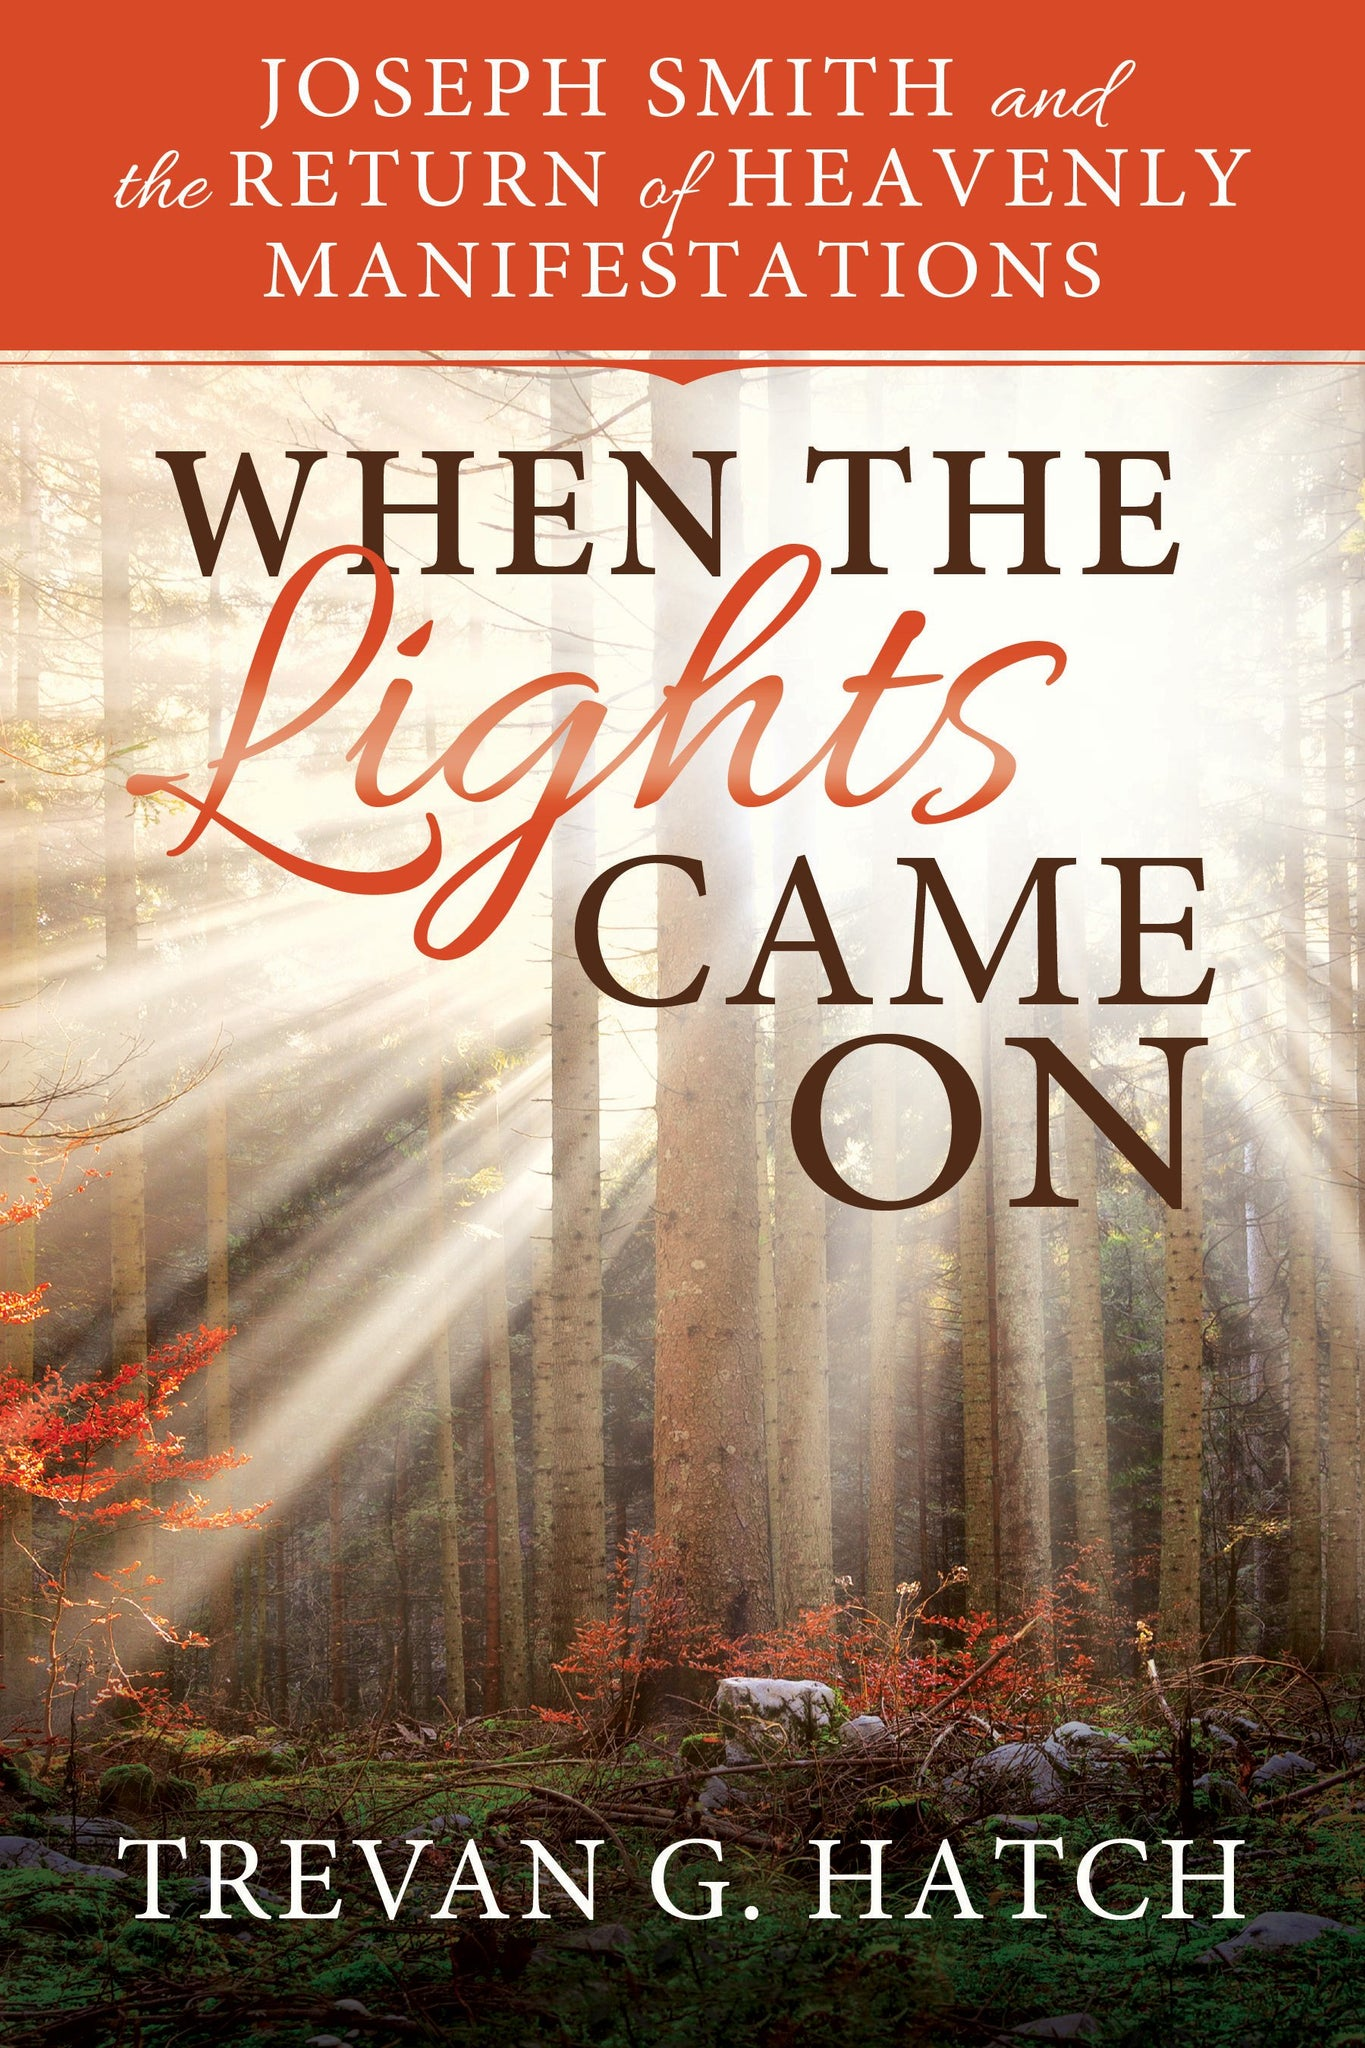 When the Lights Came On: Joseph Smith and the Return of Heavenly Manifestations - Paperback